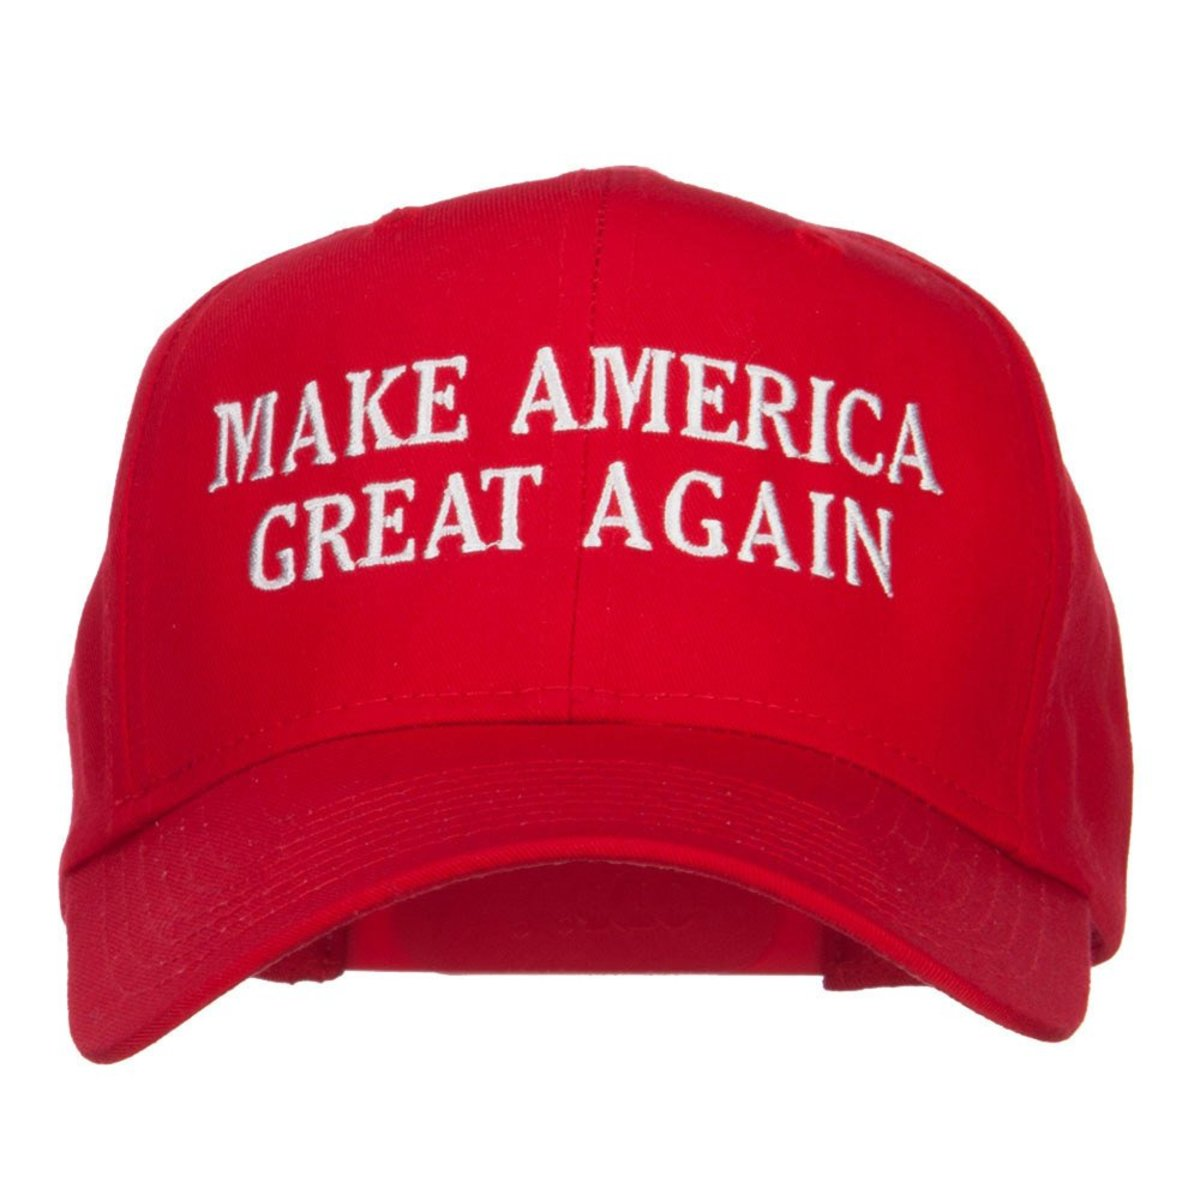 make-america-great-again-what-does-it-mean